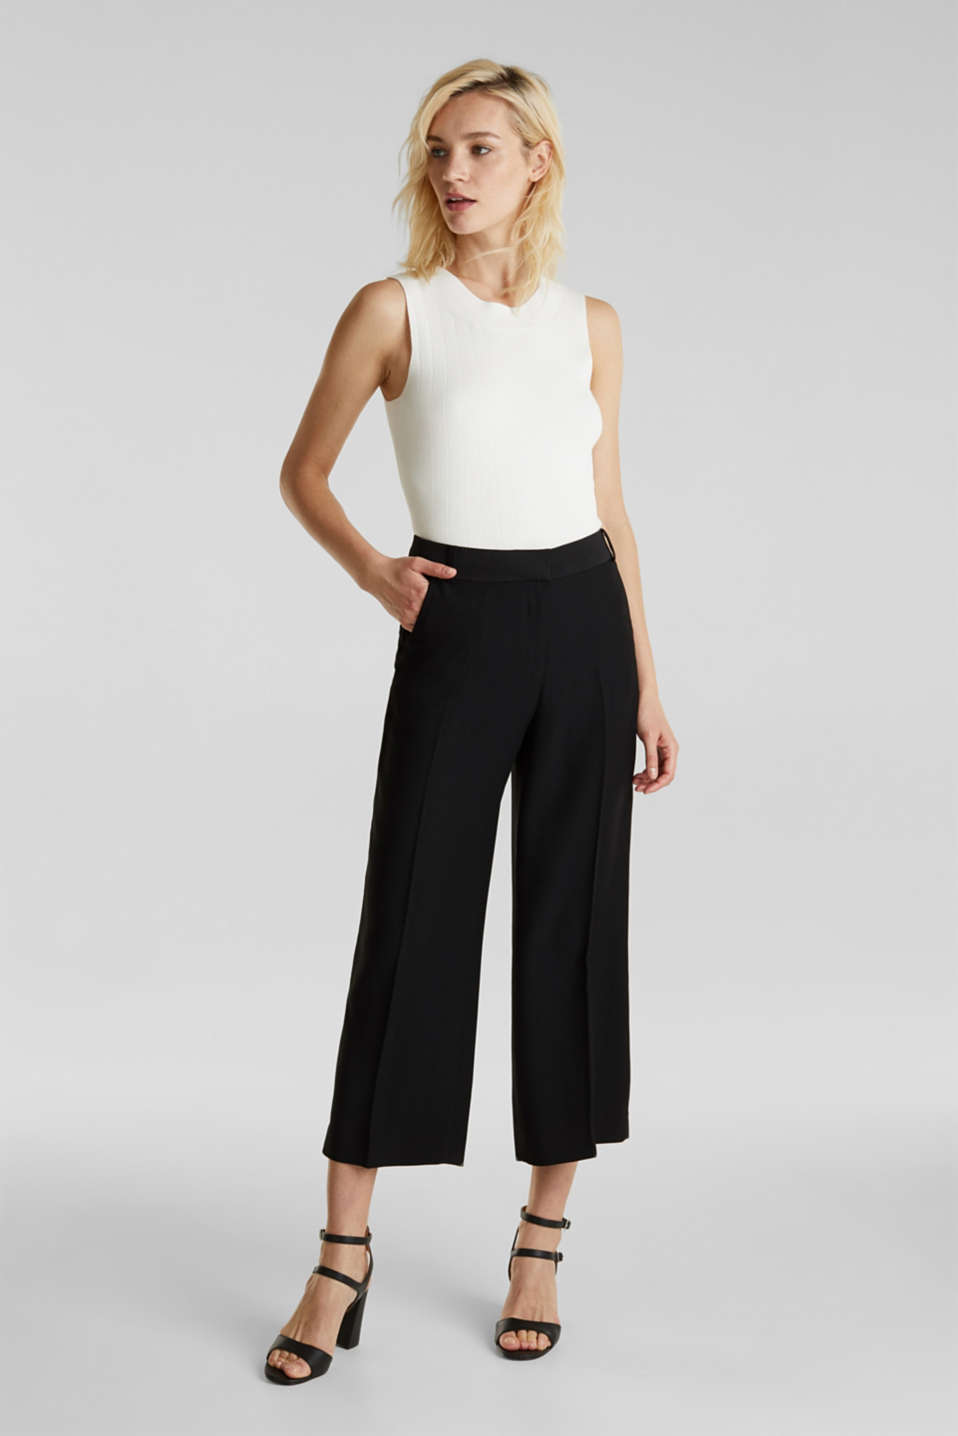 MATT SHINE mix + match culottes, BLACK, detail image number 1